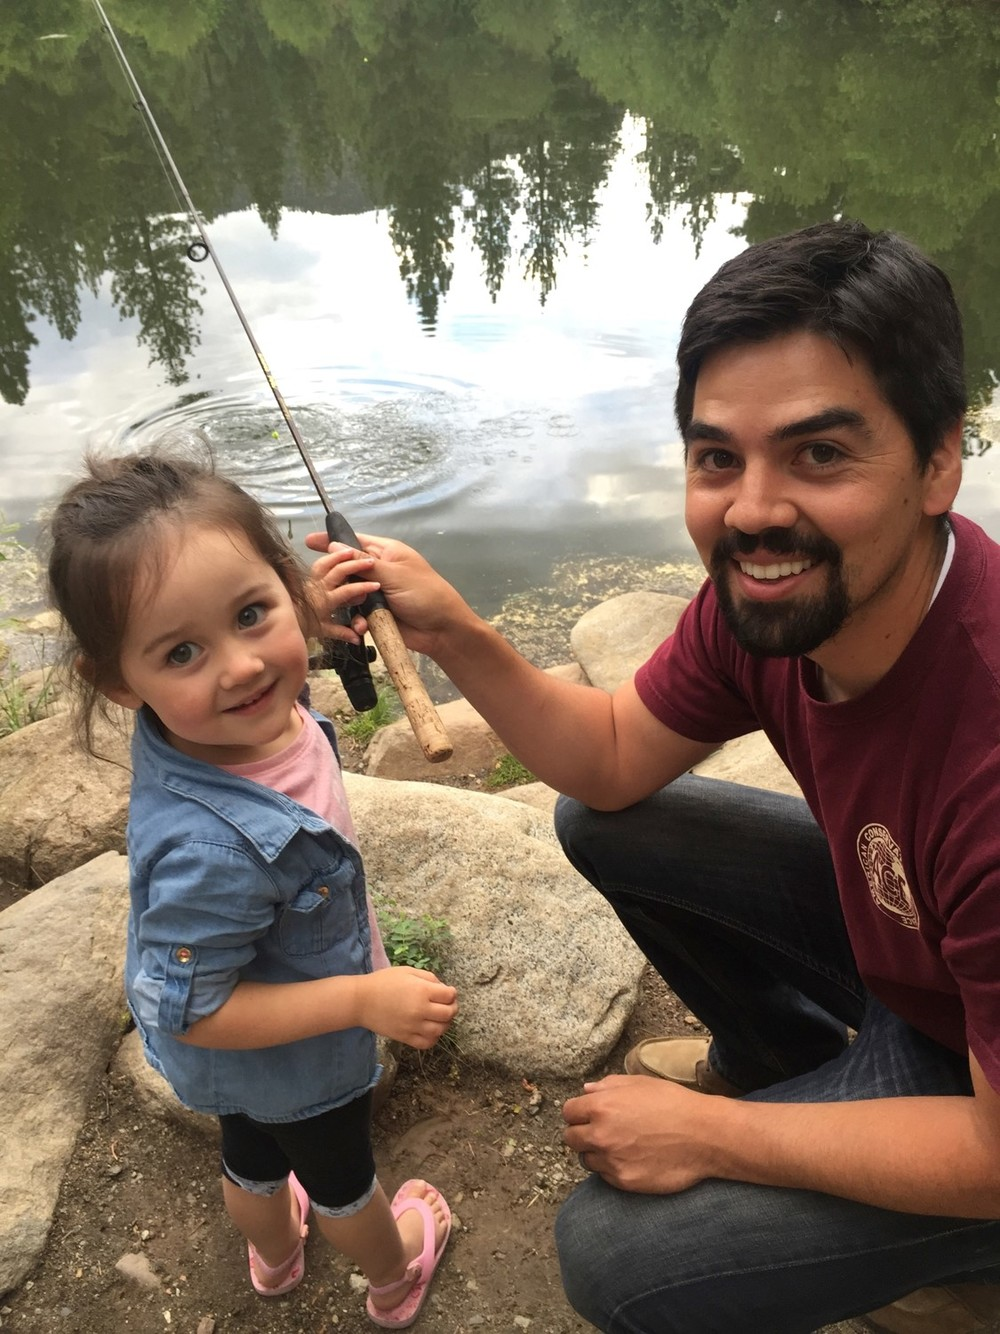 Jacob Palma and his daughter Kaylie fishing on Silver Lake Uinta Forest.